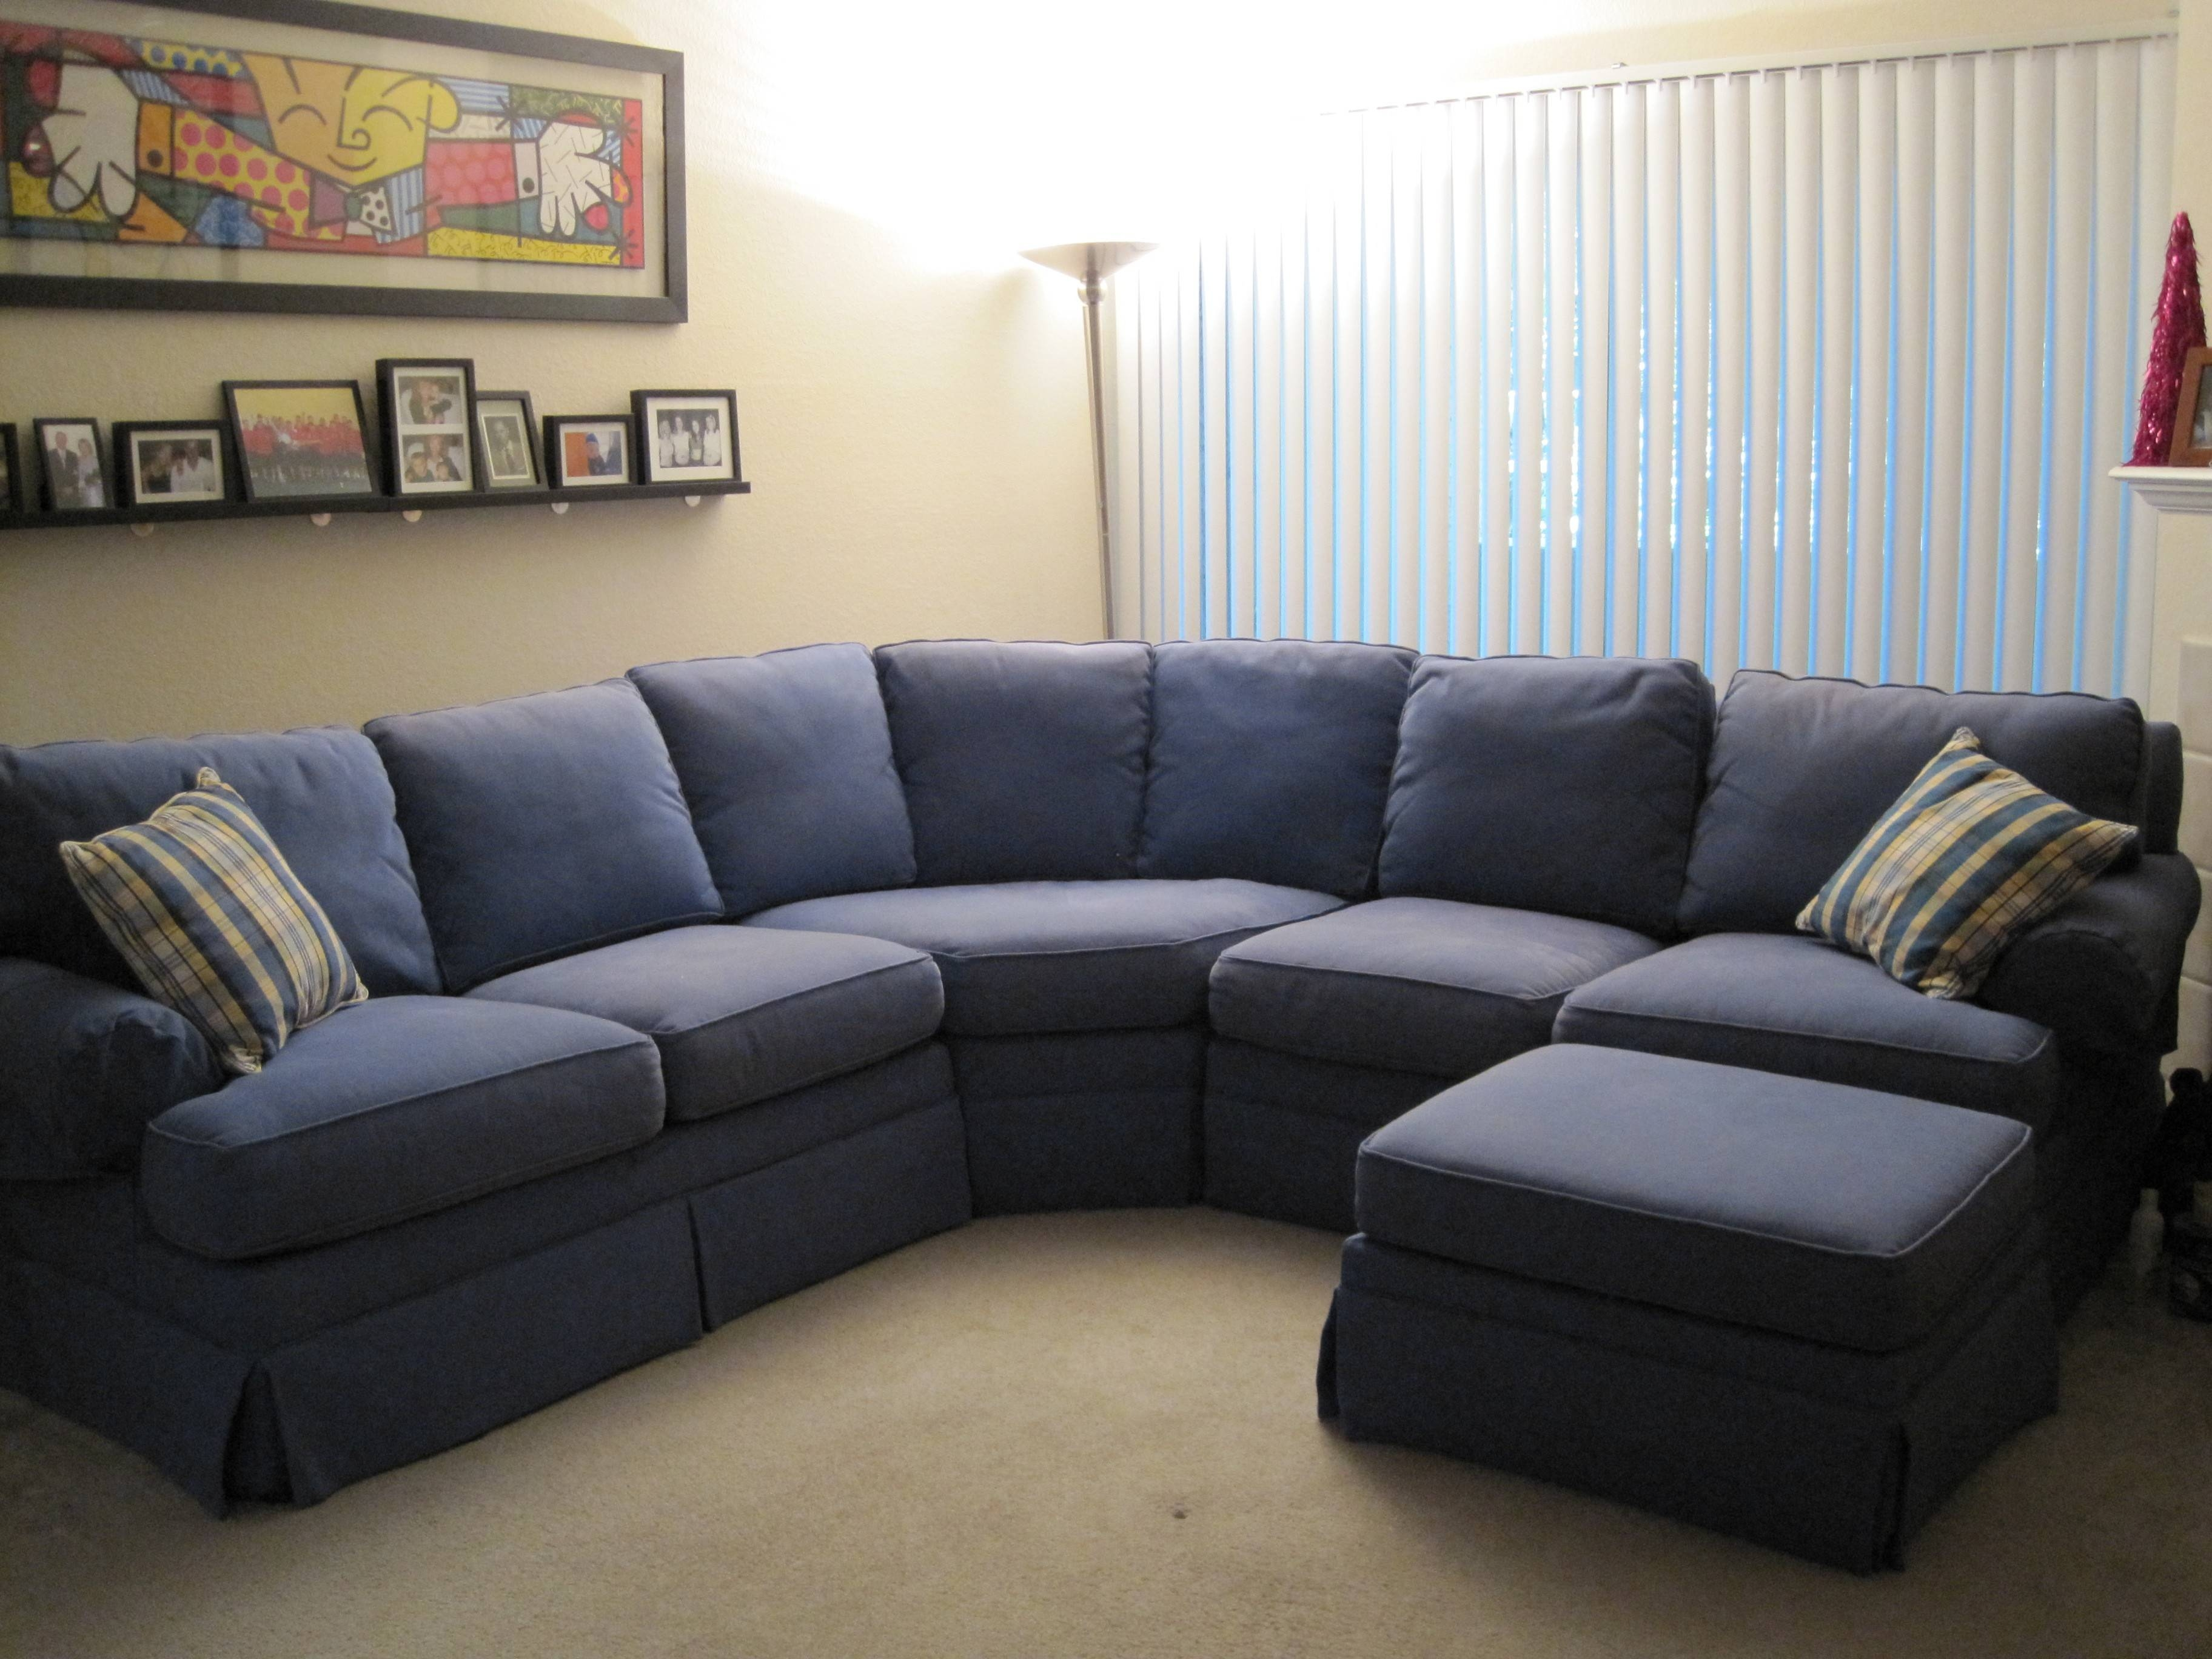 Furniture: Modern And Contemporary Sofa Sectionals For Living Room intended for Blue Leather Sectional Sofas (Image 8 of 15)